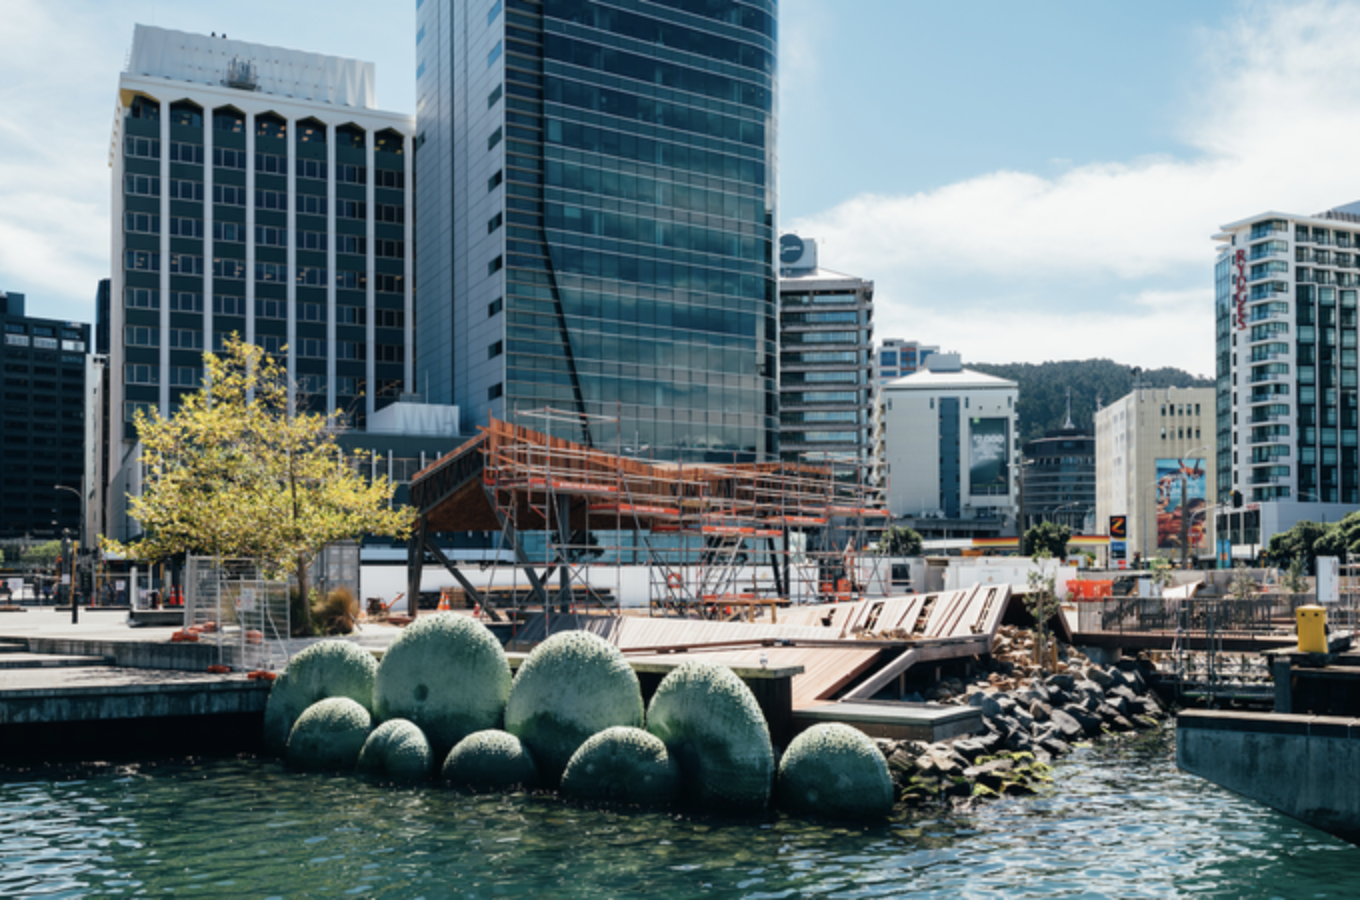 """""""A beautiful level of craftsmanship and detail with an underlying Pacific feel. The form and scale of the building wraps and envelopes you providing a wonderful communal aspect with the large tables at the threshold of the land and sea. Crafted urban infrastructure."""" Best Awards citation"""